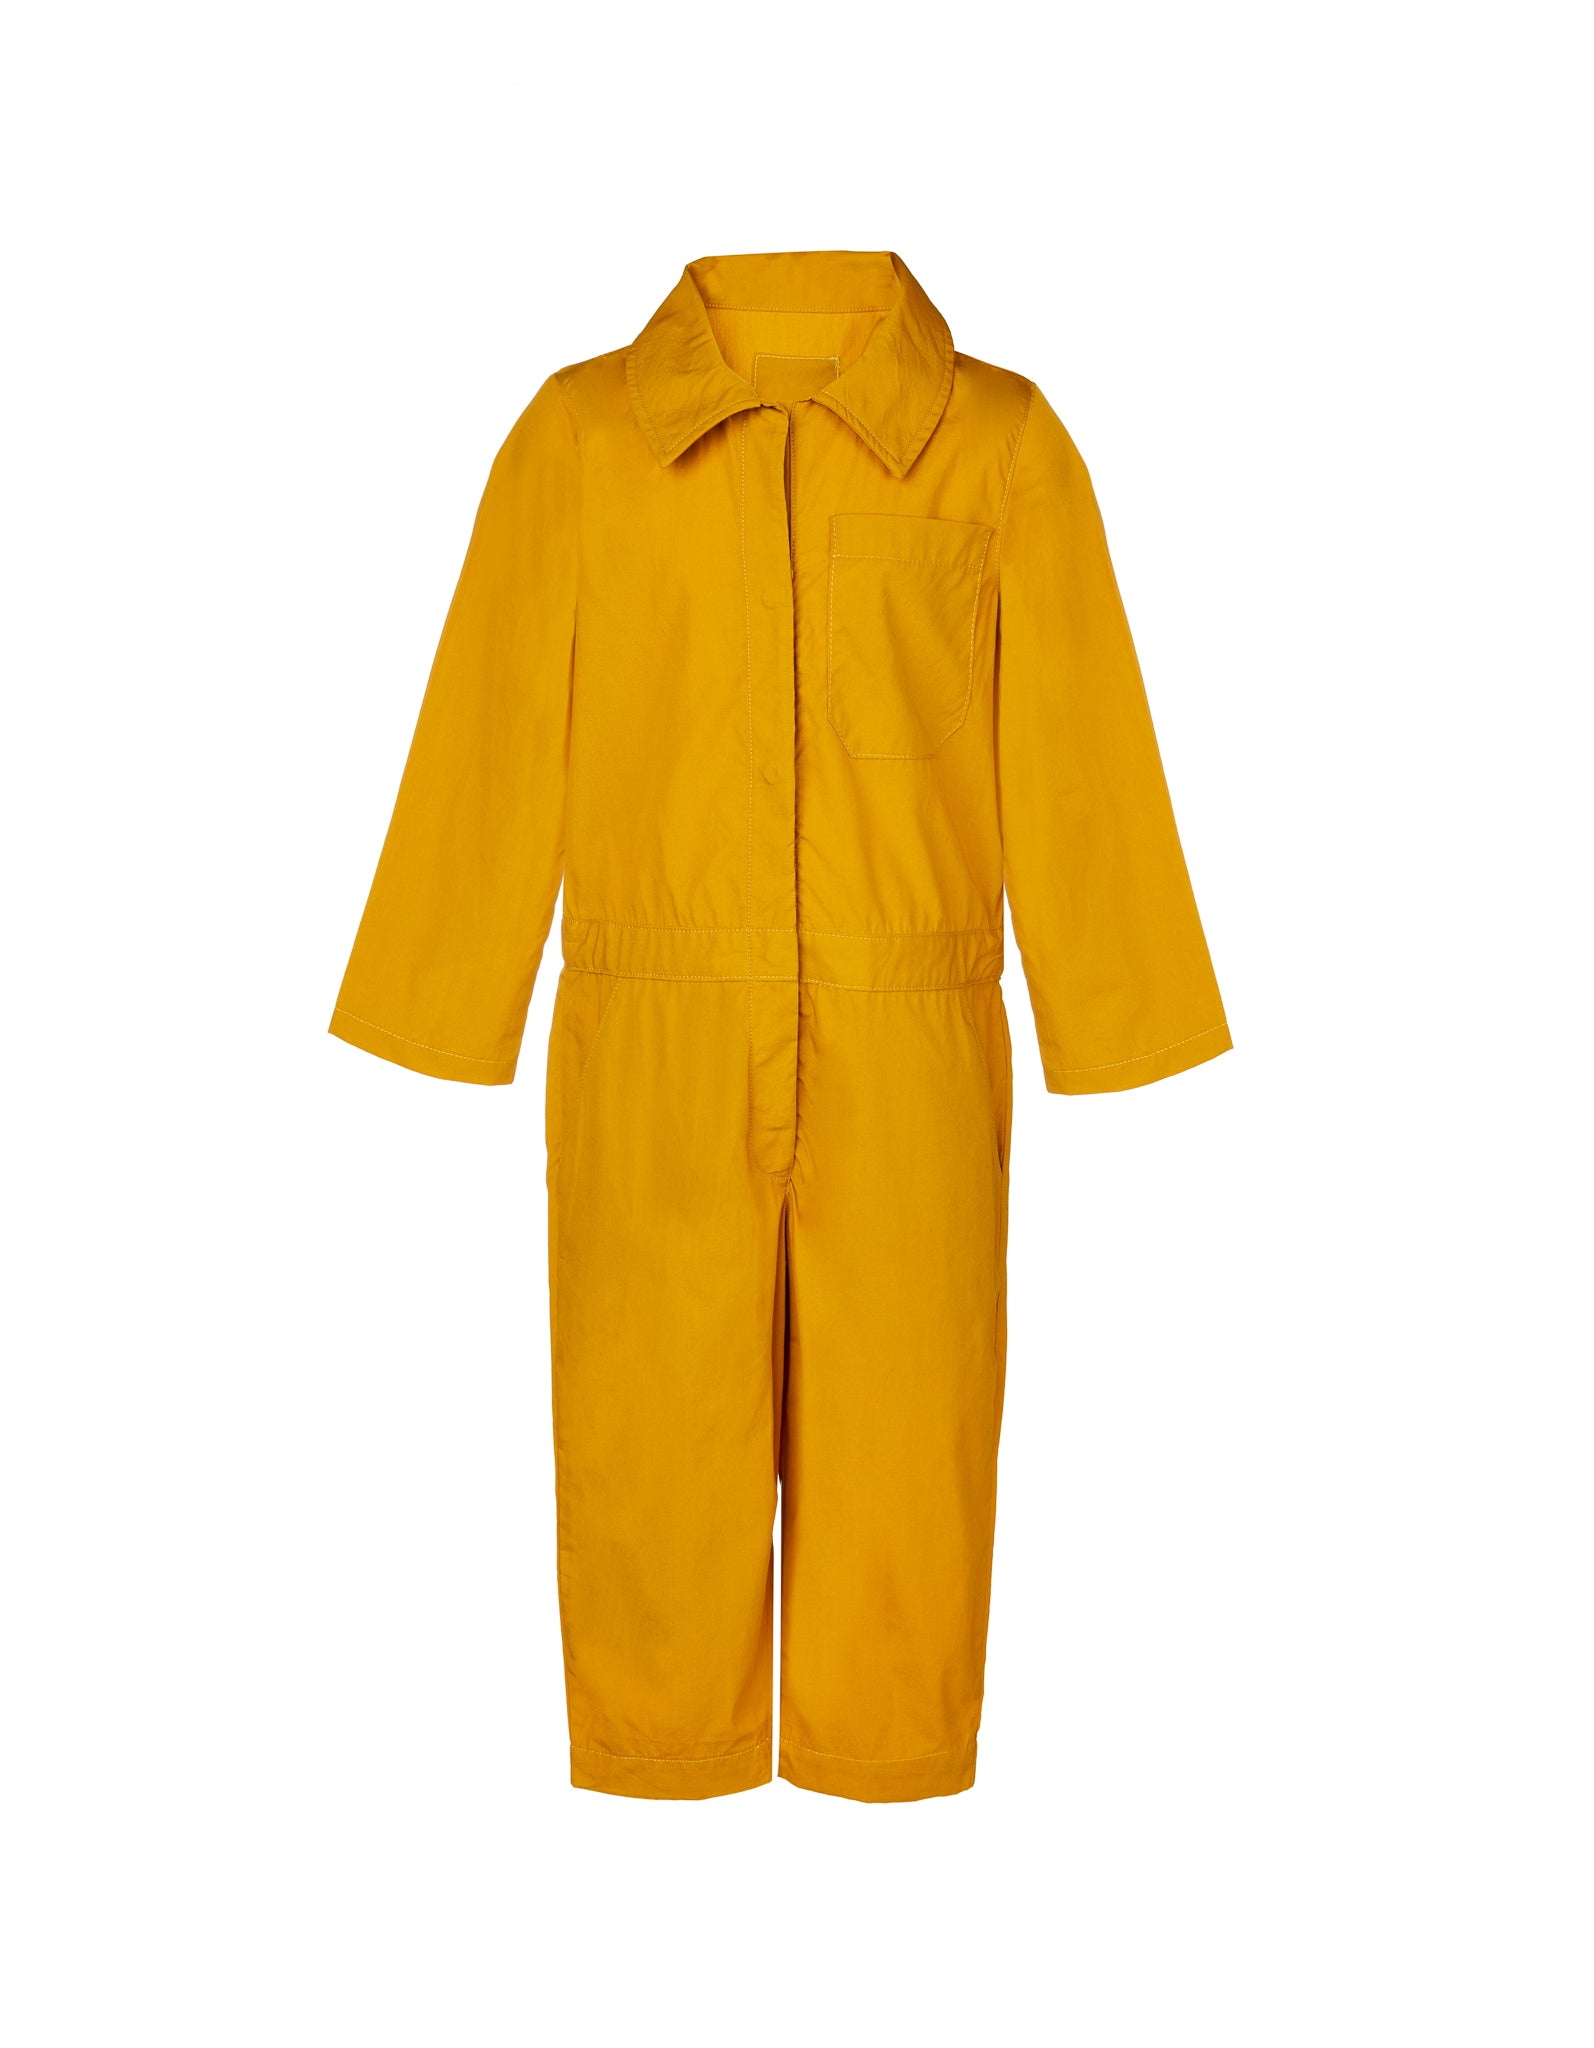 WORKWEAR JUMPSUIT IN OCHRE